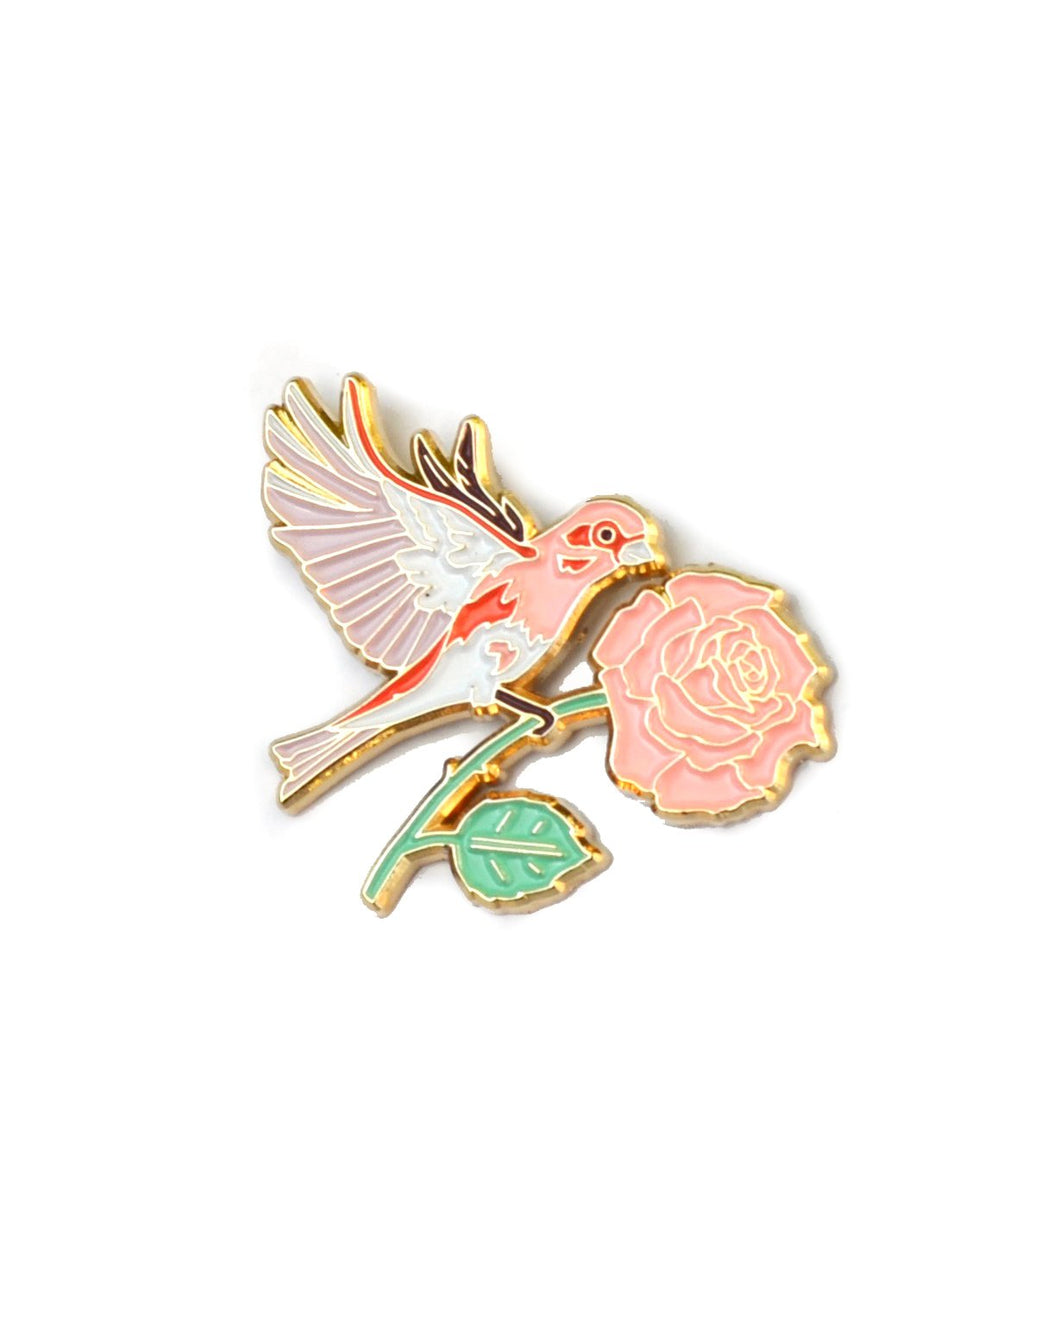 Finch and Rose - Enamel Lapel Pin